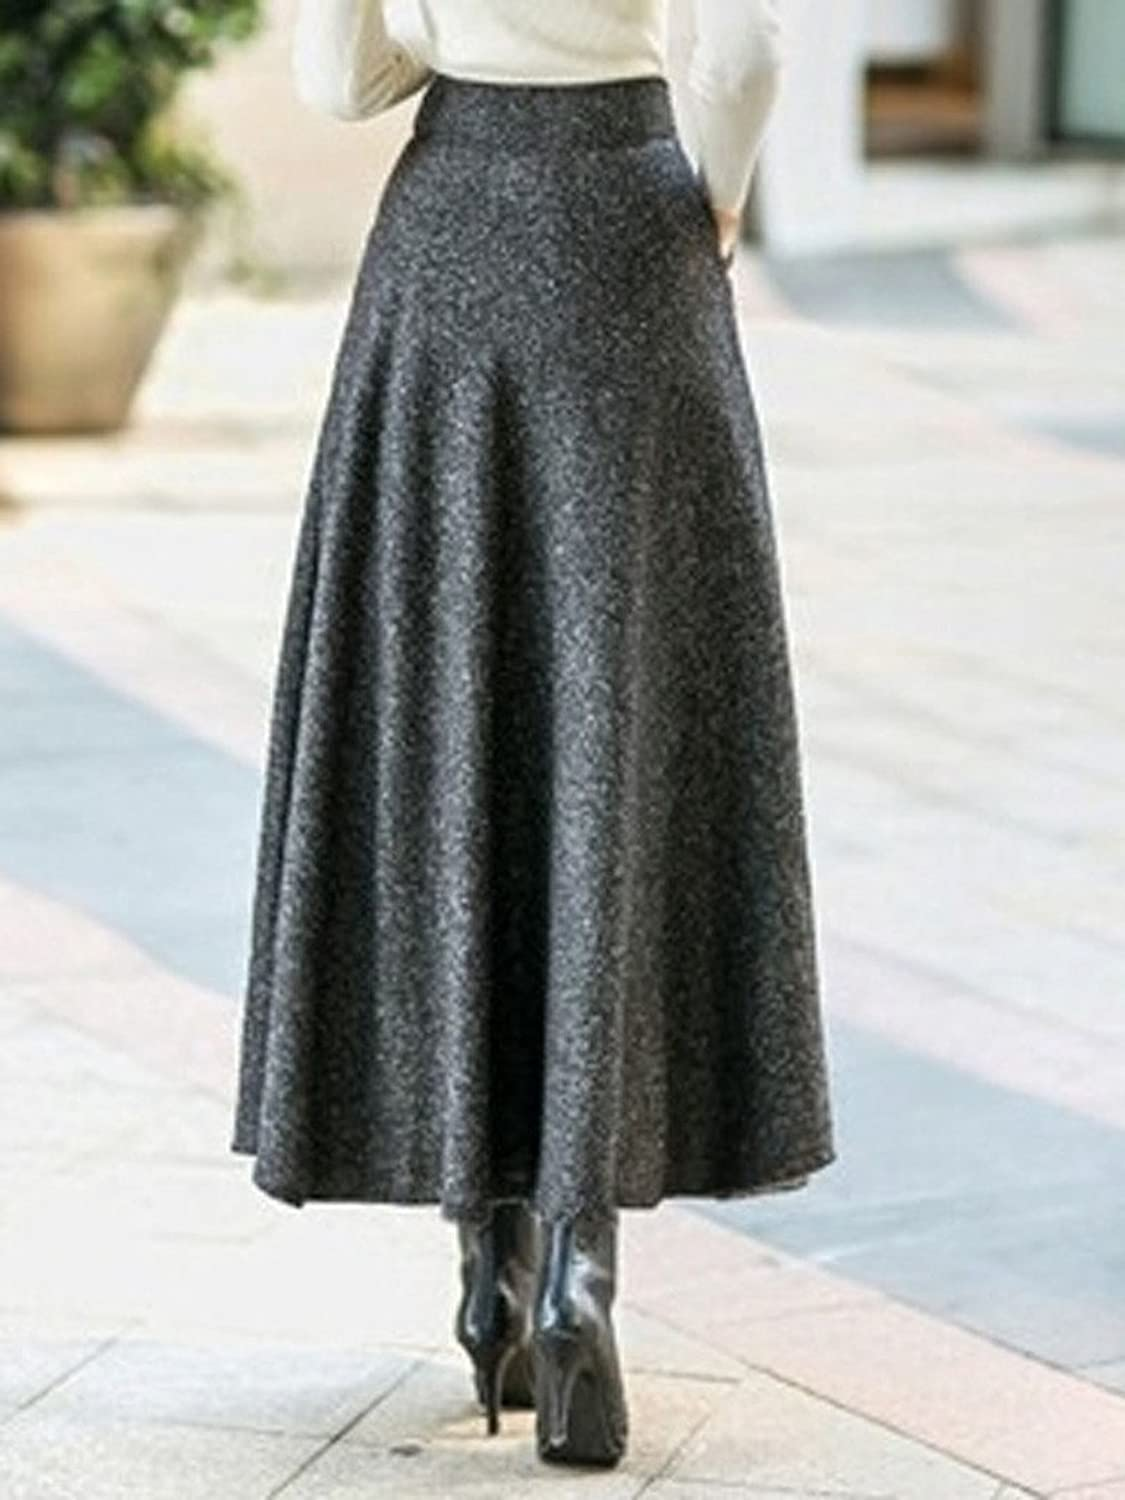 Victorian Skirts | Bustle, Walking, Edwardian Skirts CR Womens High Waist A-line Flared Long Skirt Winter Fall Midi Skirt $27.99 AT vintagedancer.com